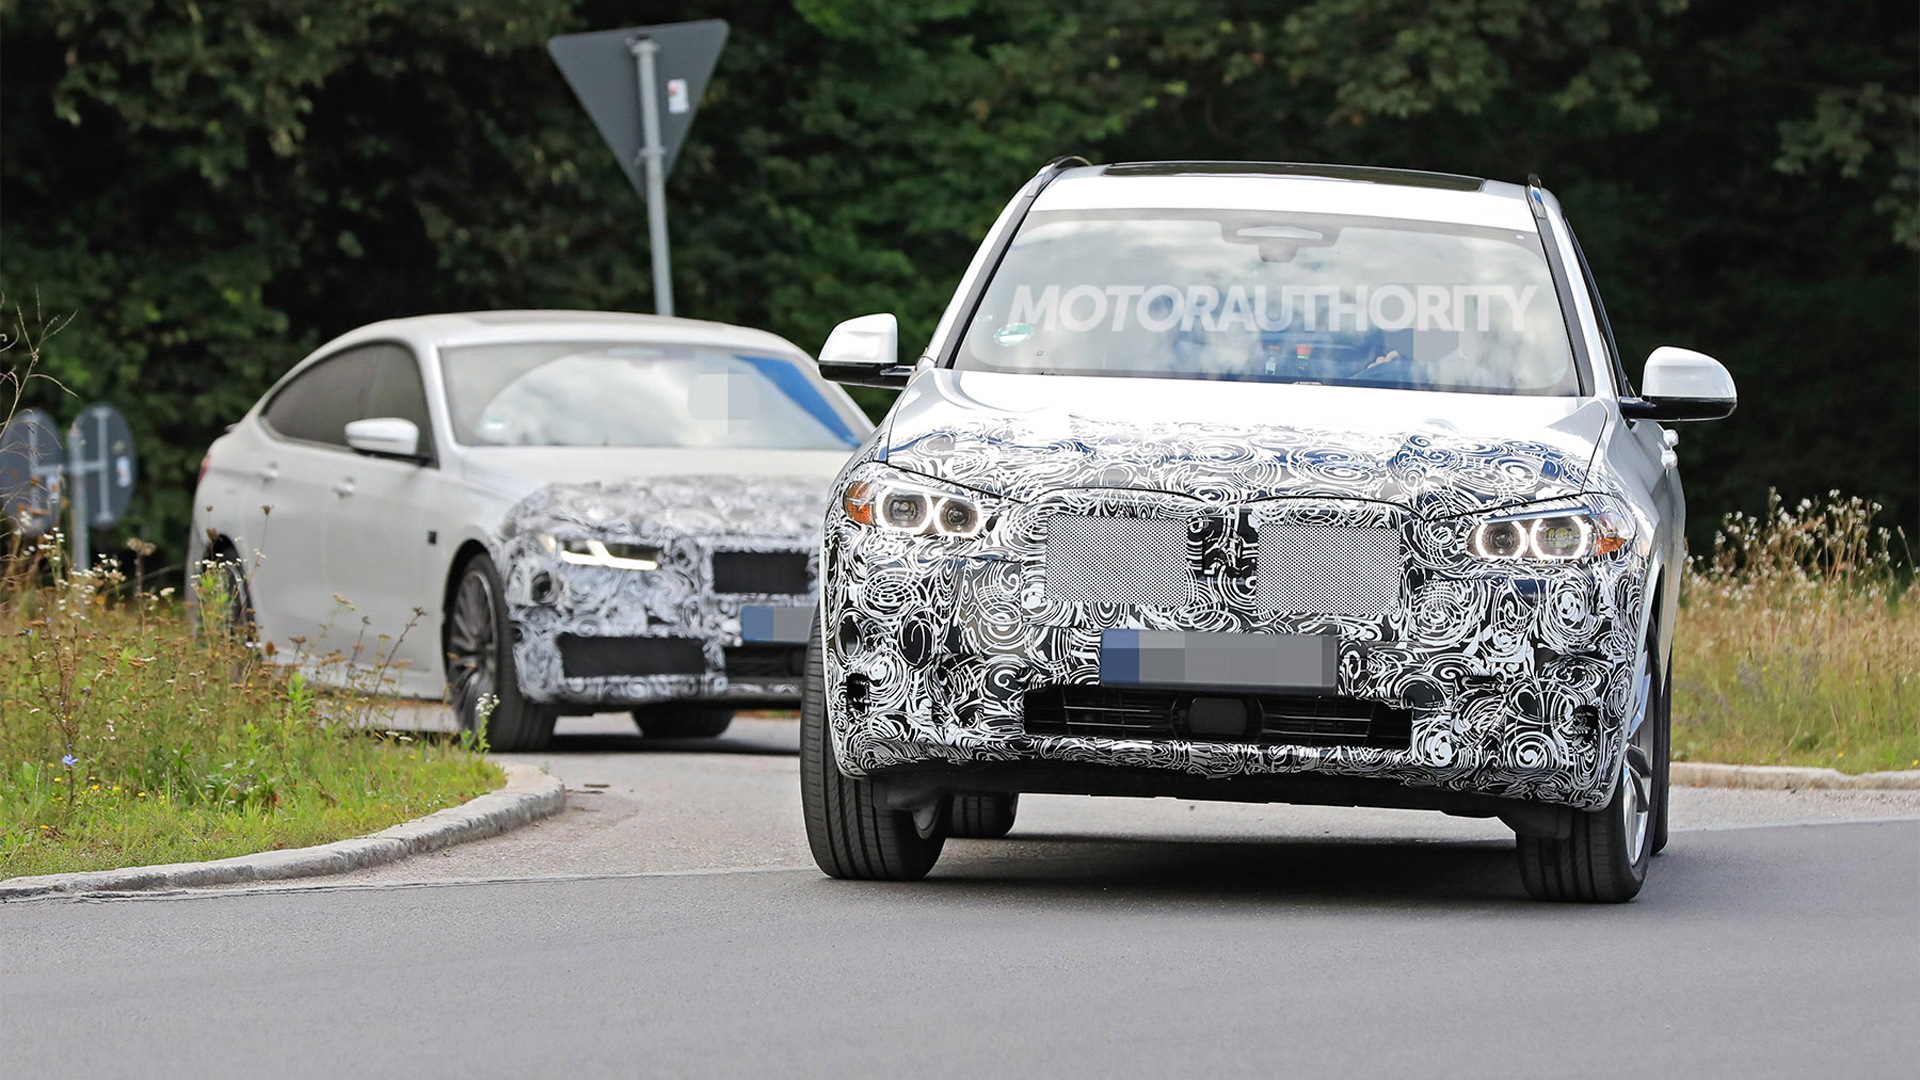 2022 BMW X3 facelift spy shots - Photo credit: S. Baldauf/SB-Medien